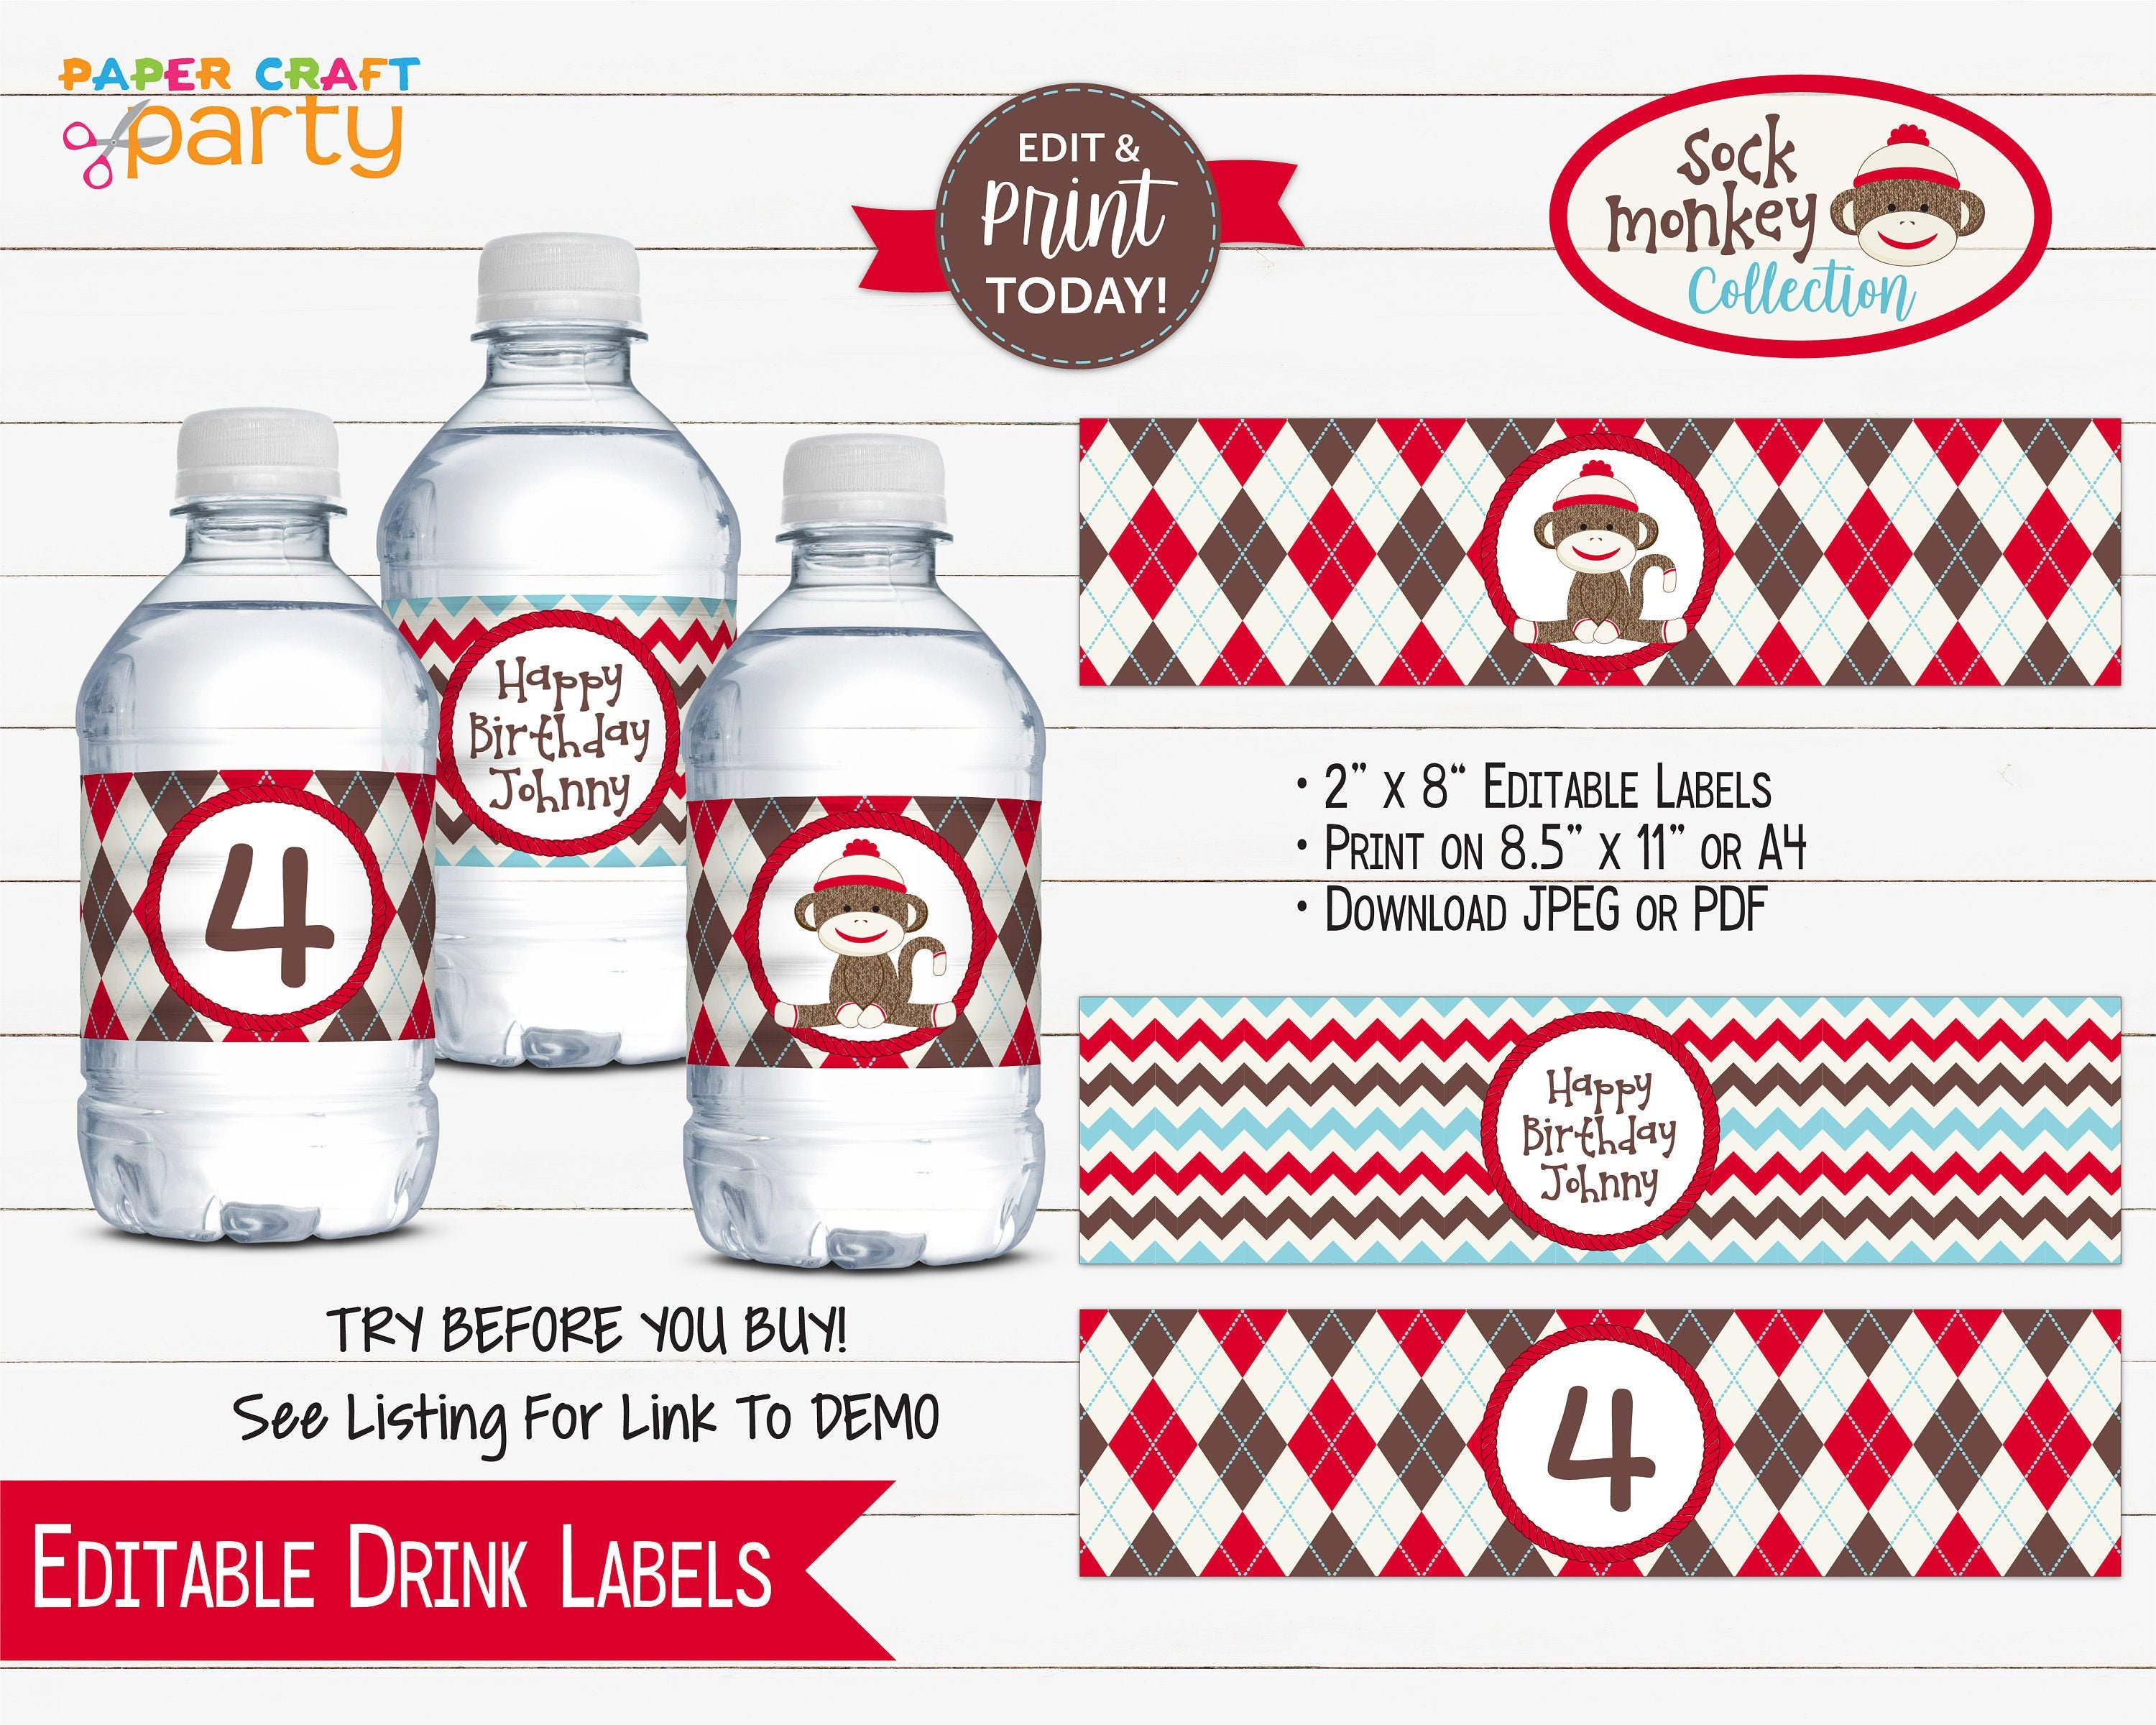 Surprising Sock Monkey Printable Birthday Drink Labels Printable Water Bottle Wrappers Edit Online Download Today With Free Corjl Com Smr Interior Design Ideas Lukepblogthenellocom